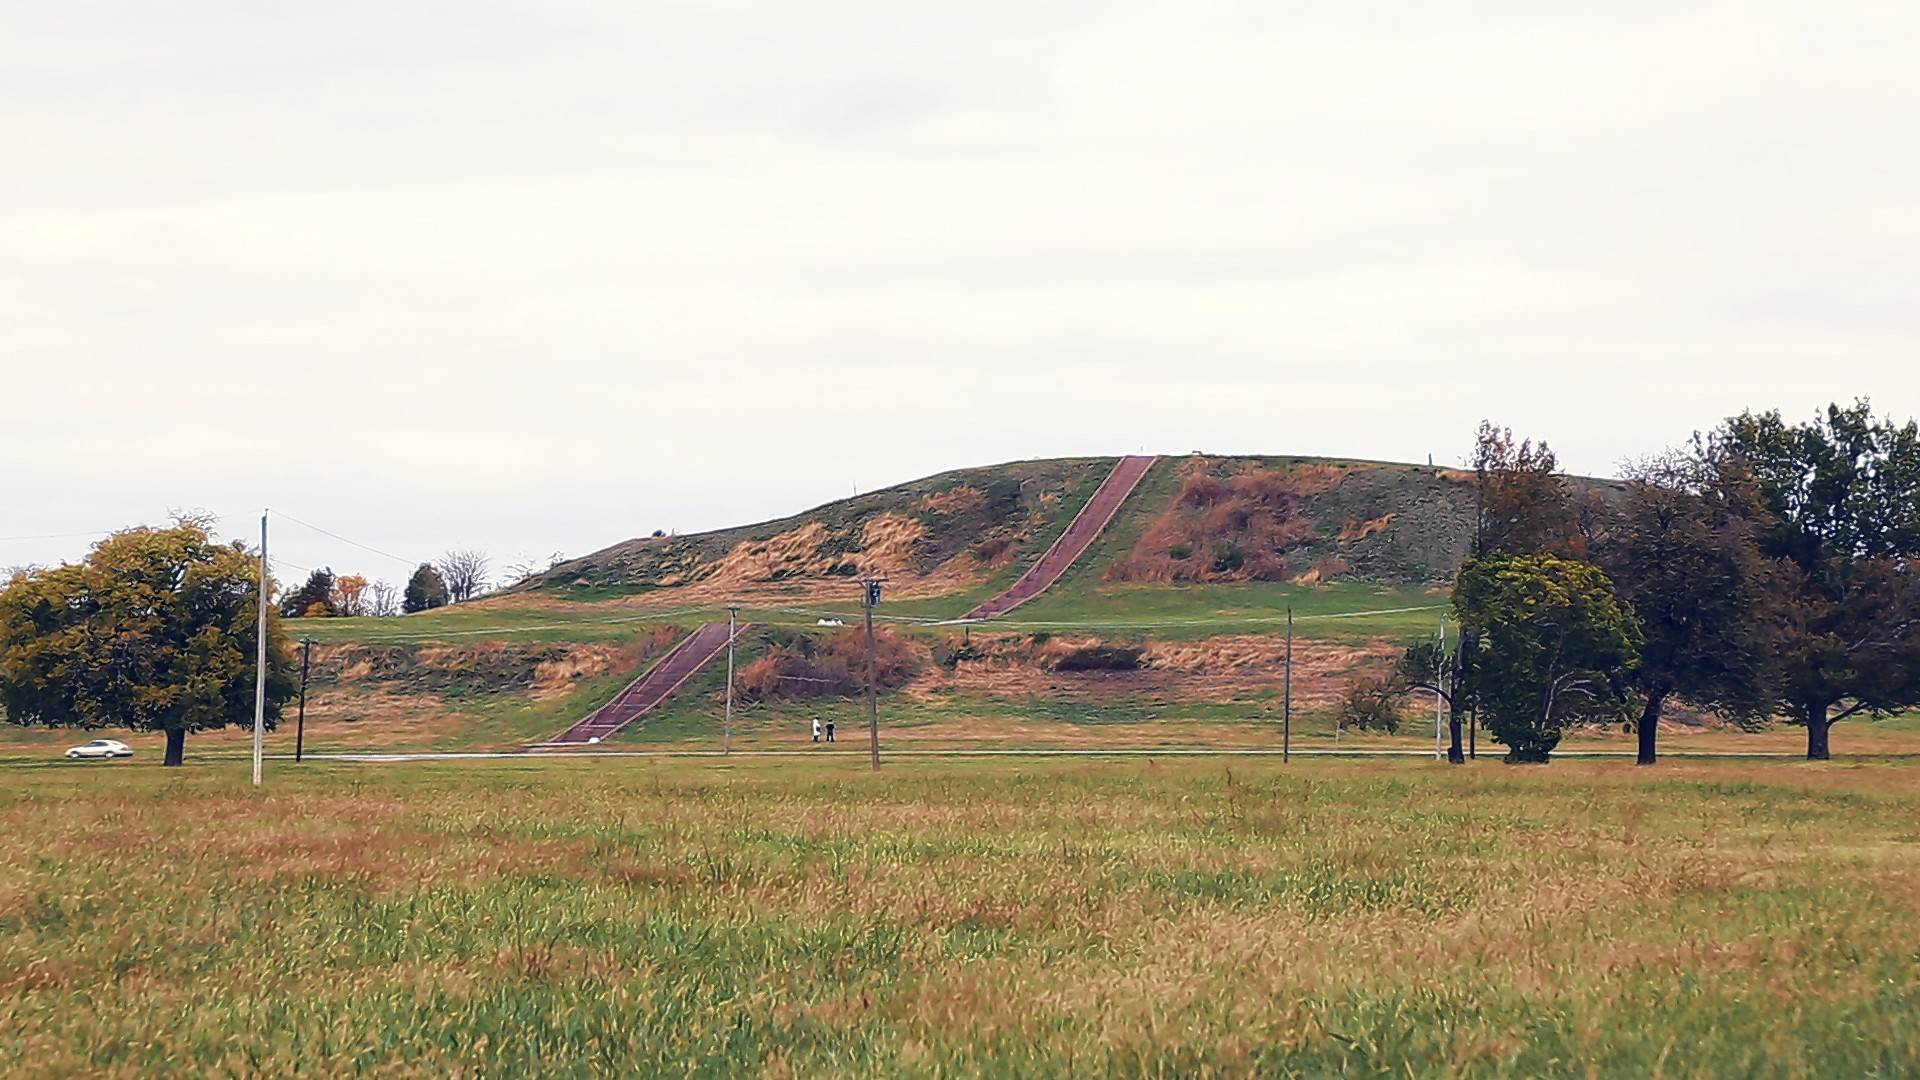 Illinois 200: Cahokia Mounds was 'America's first city'